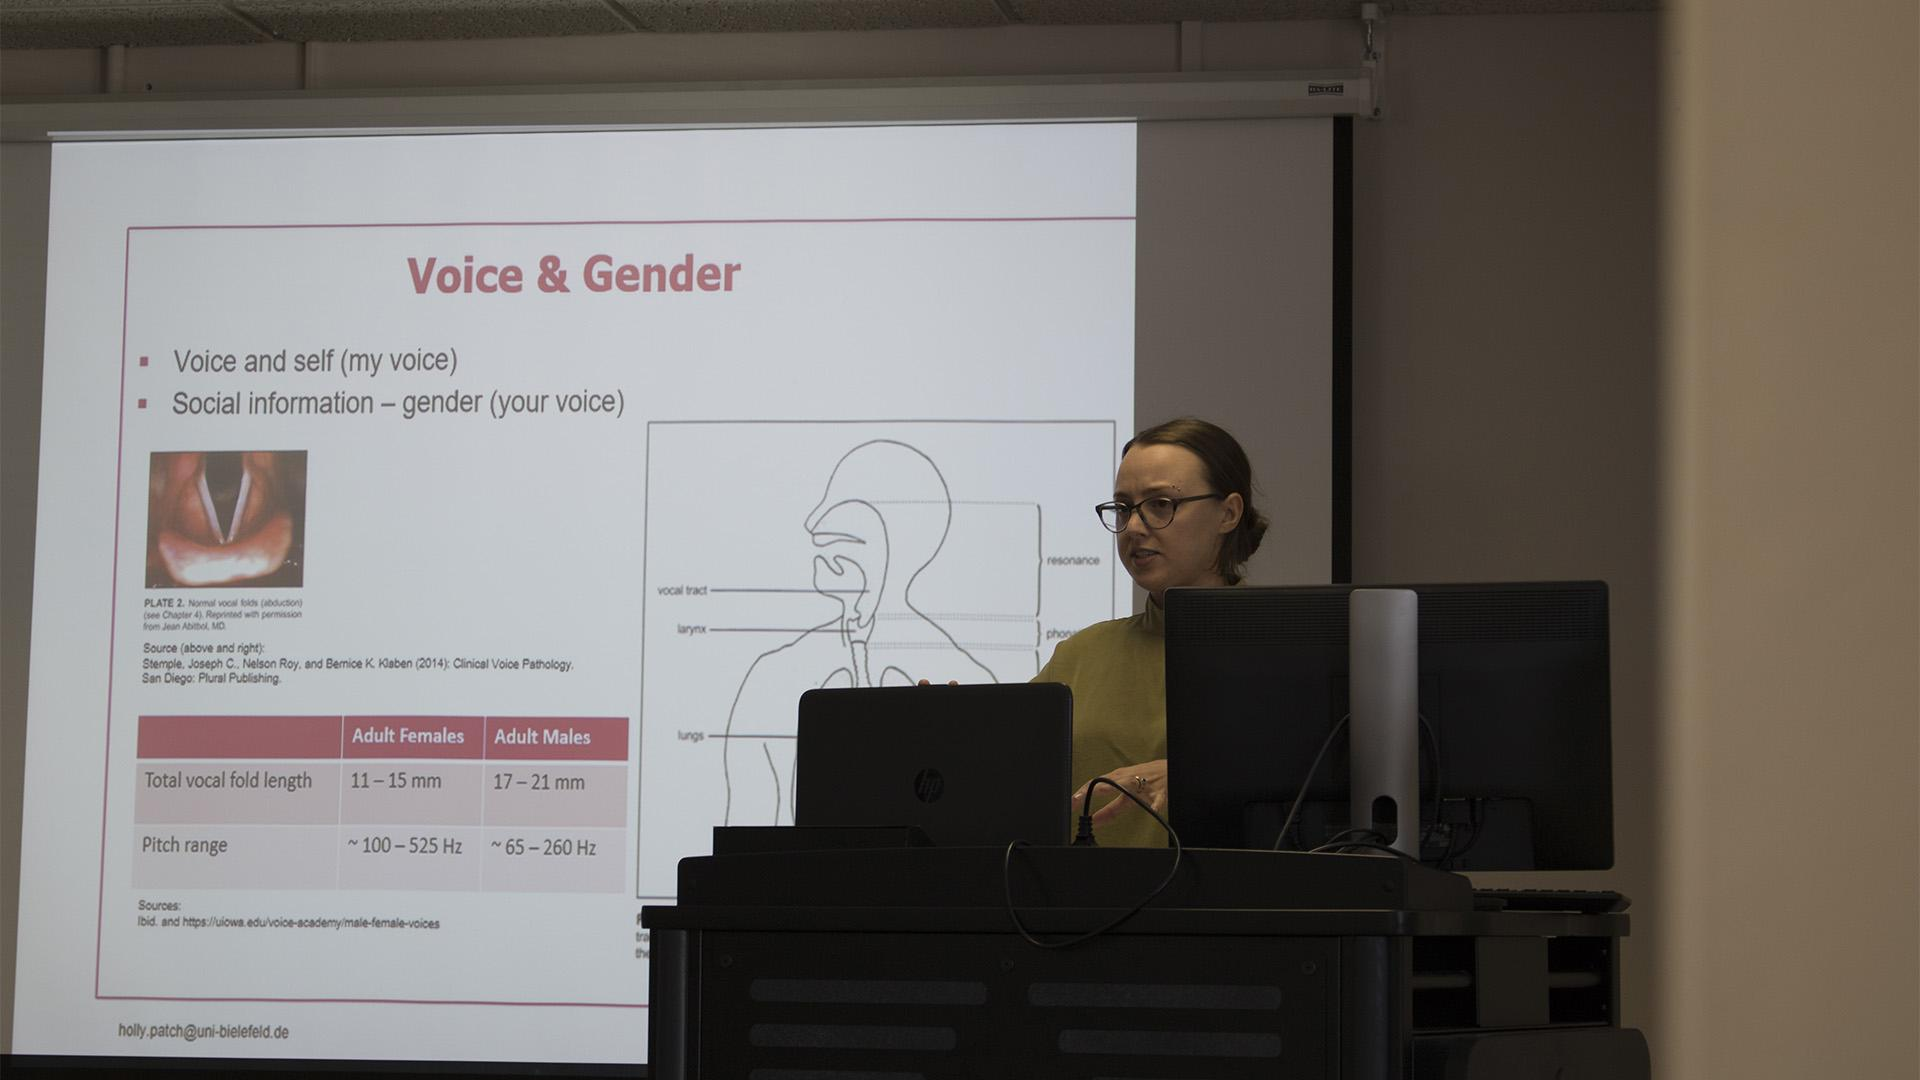 Holly Patch speaks at the Trans Vocality: singing, Gender,and Joyful Politics event at the Jefferson Building on Wednesday, March 7, 2018. The event explored western musical in terms of trans and gender non-conforming representation. (Yue Zhang/Daily Iowan)